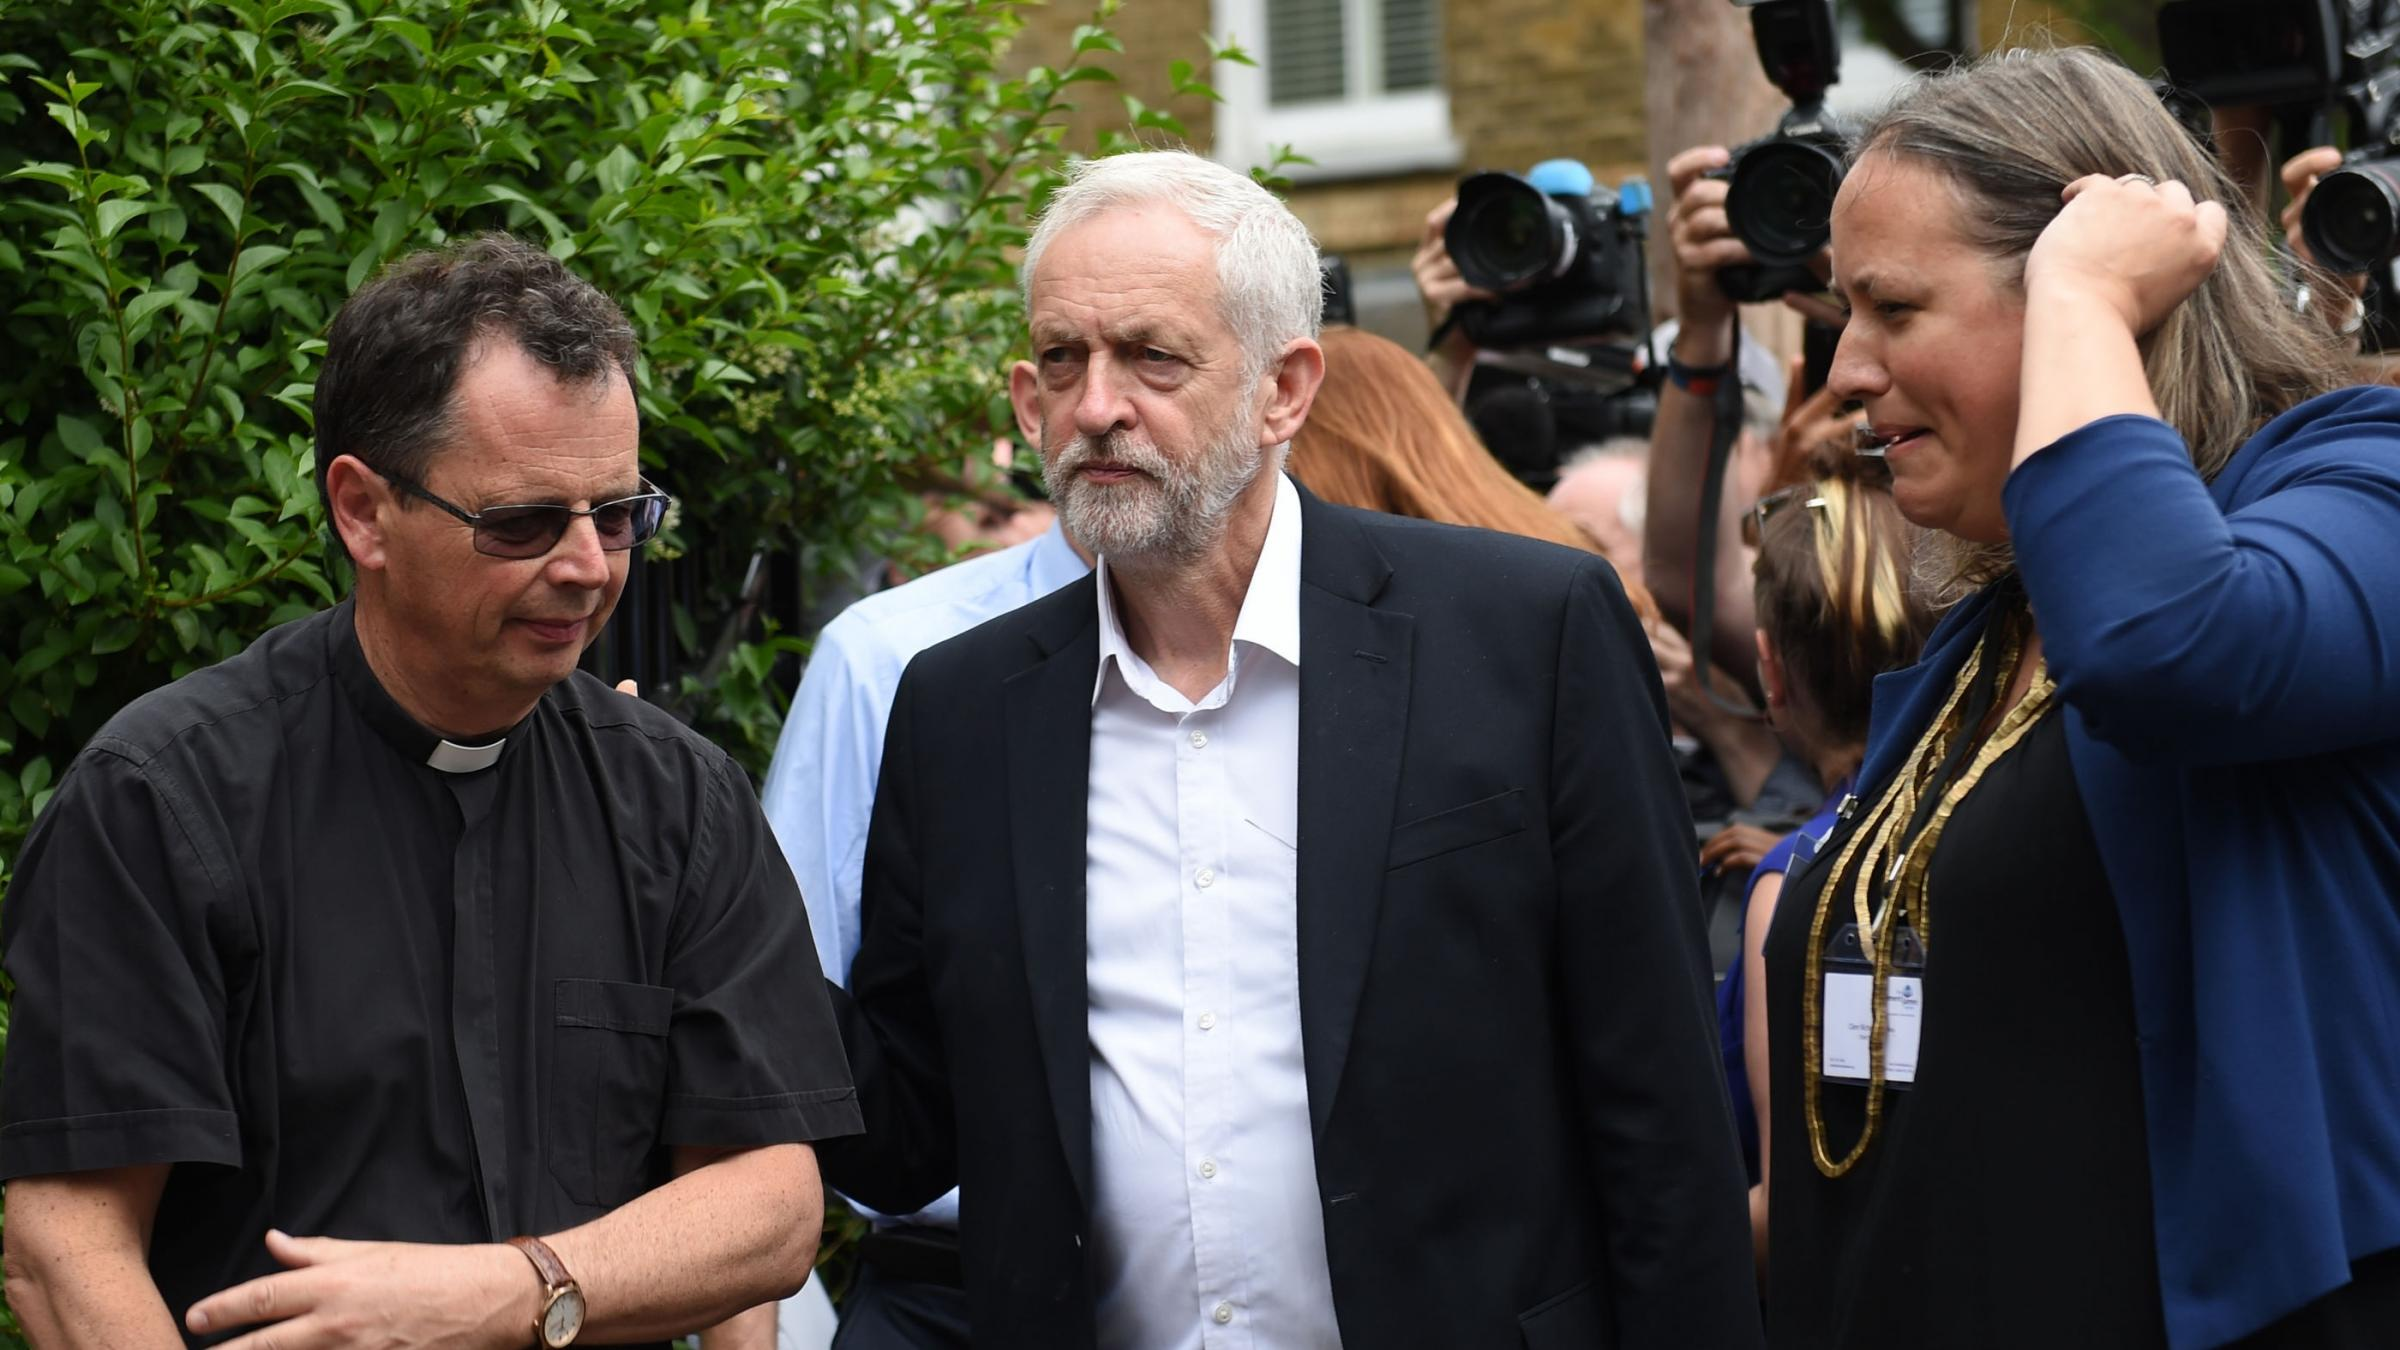 Corbyn urges Government to take over empty homes for Grenfell fire victims